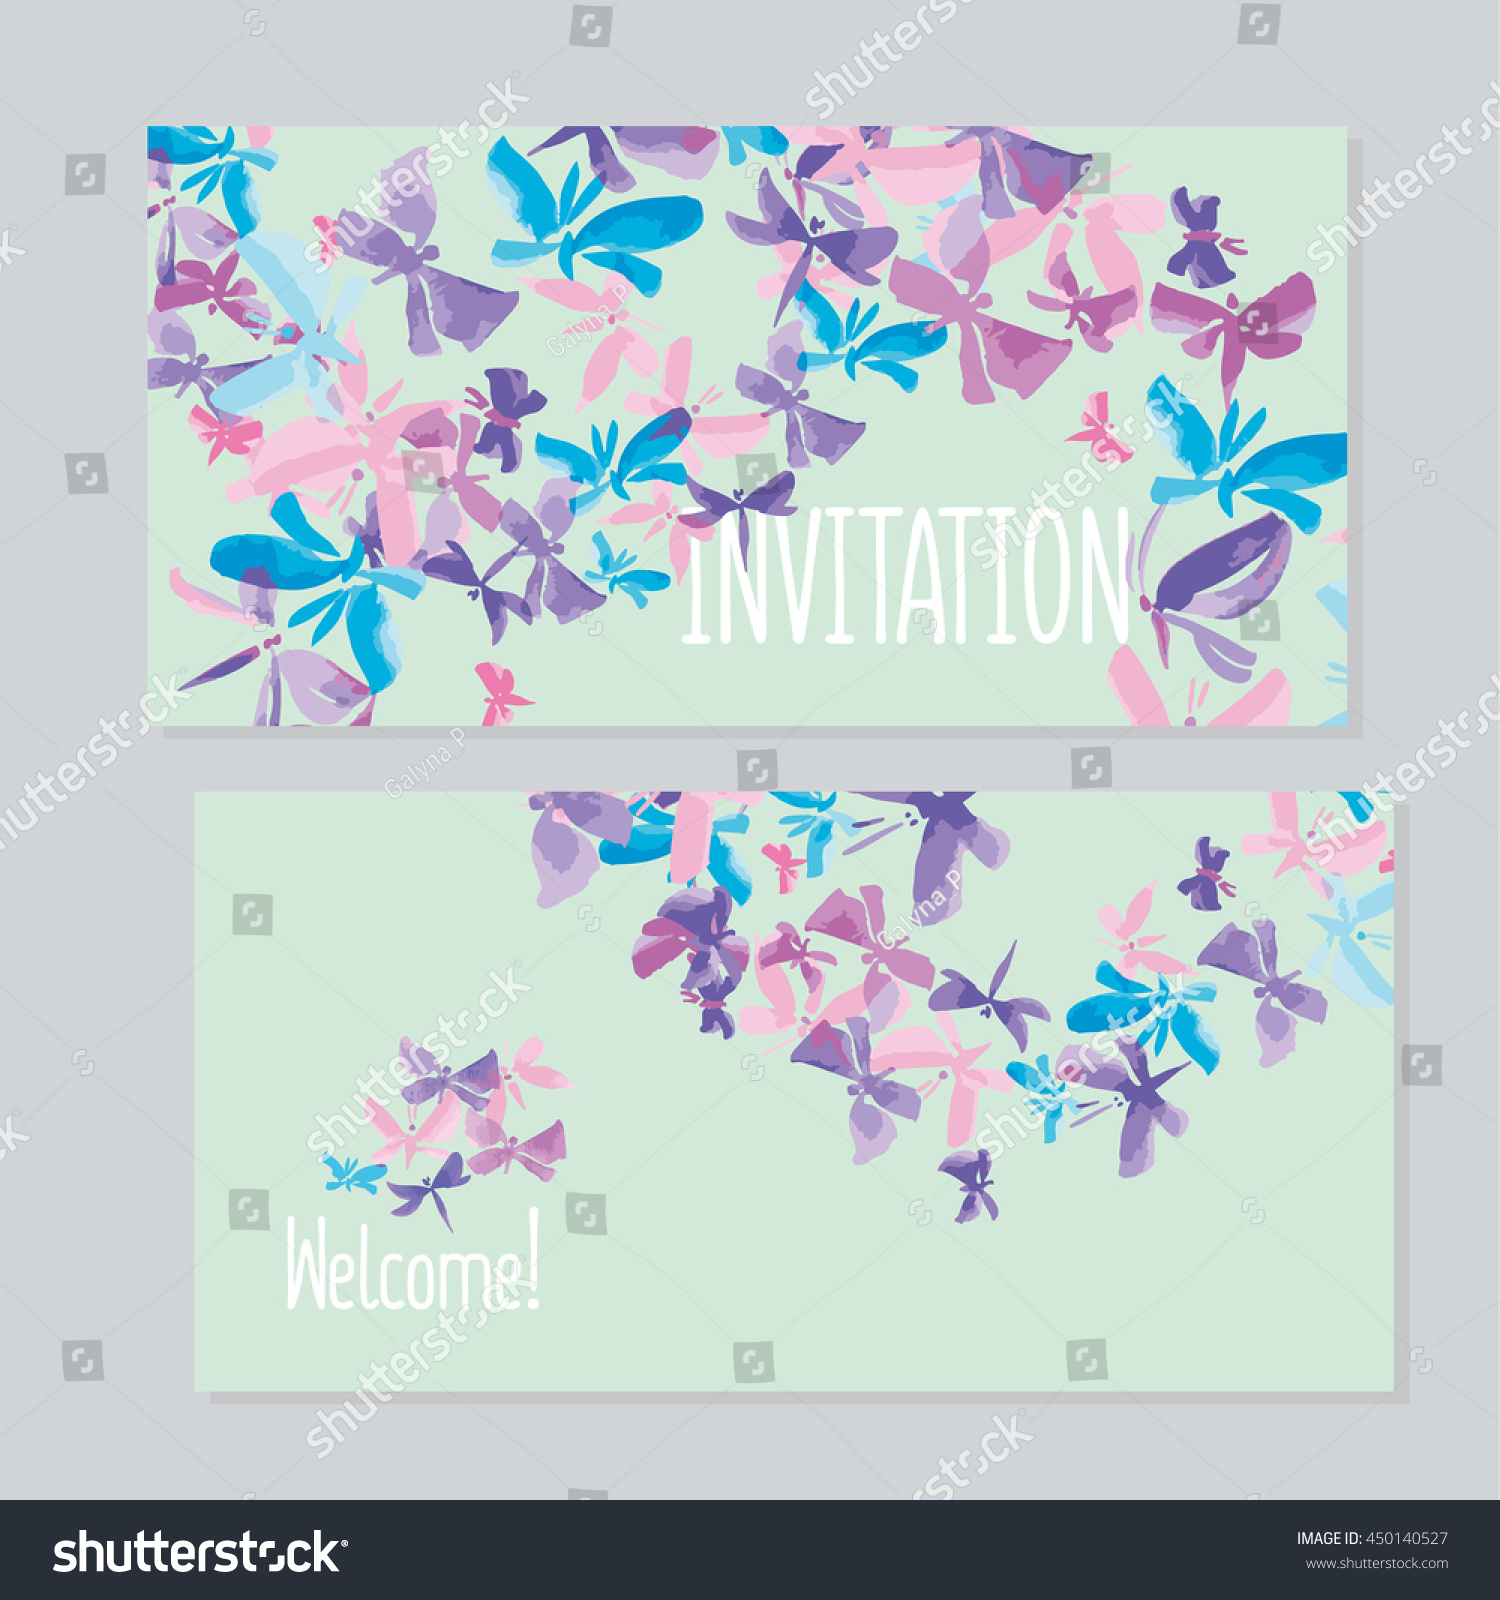 Watercolor Butterfly Invitation Template Wedding Hand Stock Vector ...